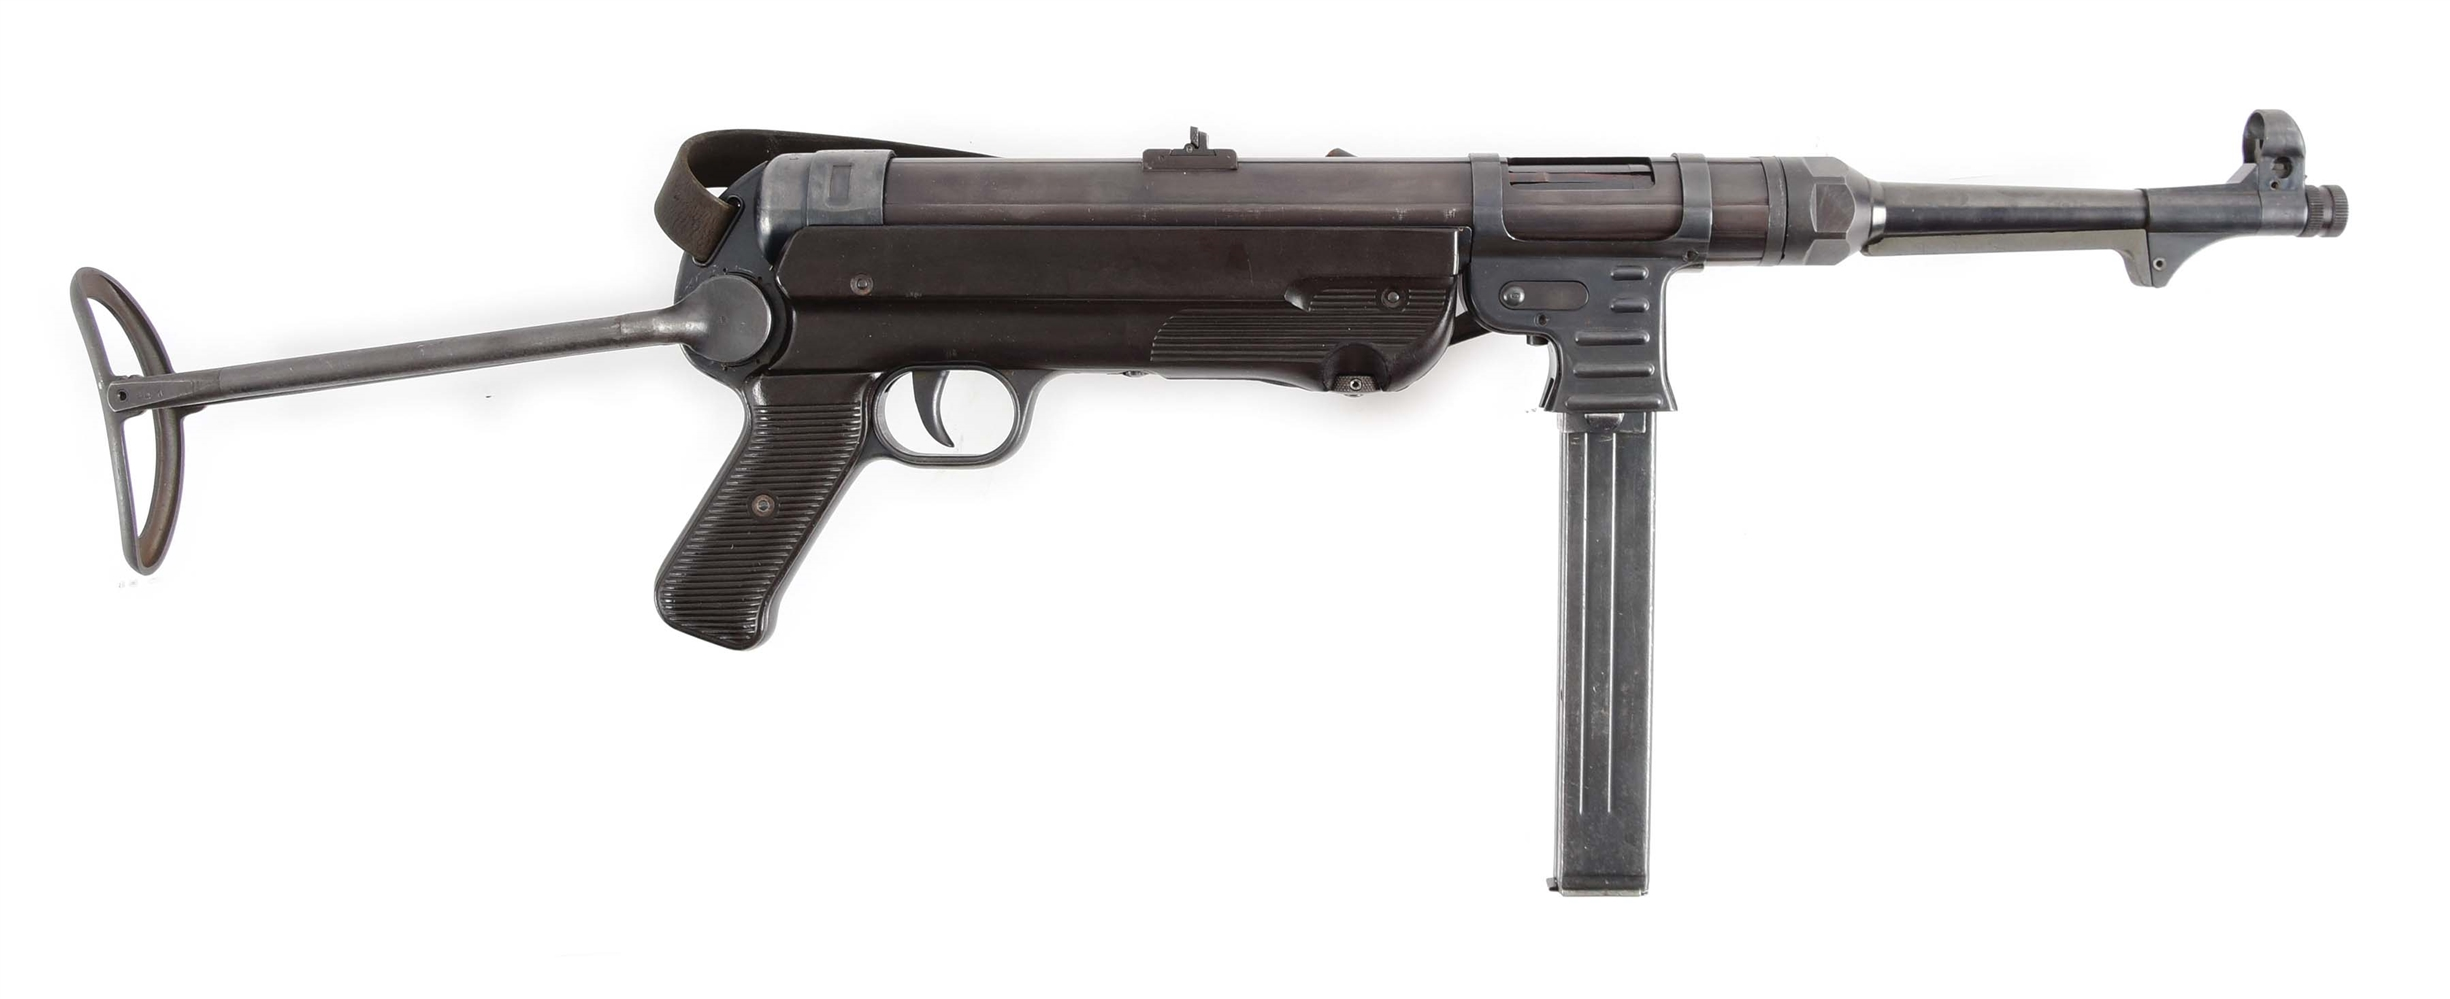 "(N) EXTREMELY ATTRACTIVE MATCHING NUMBERS ""ERB"" REGISTERED TUBE GERMAN WORLD WAR II MP-40 MACHINE GUN (FULLY TRANSFERABLE)."